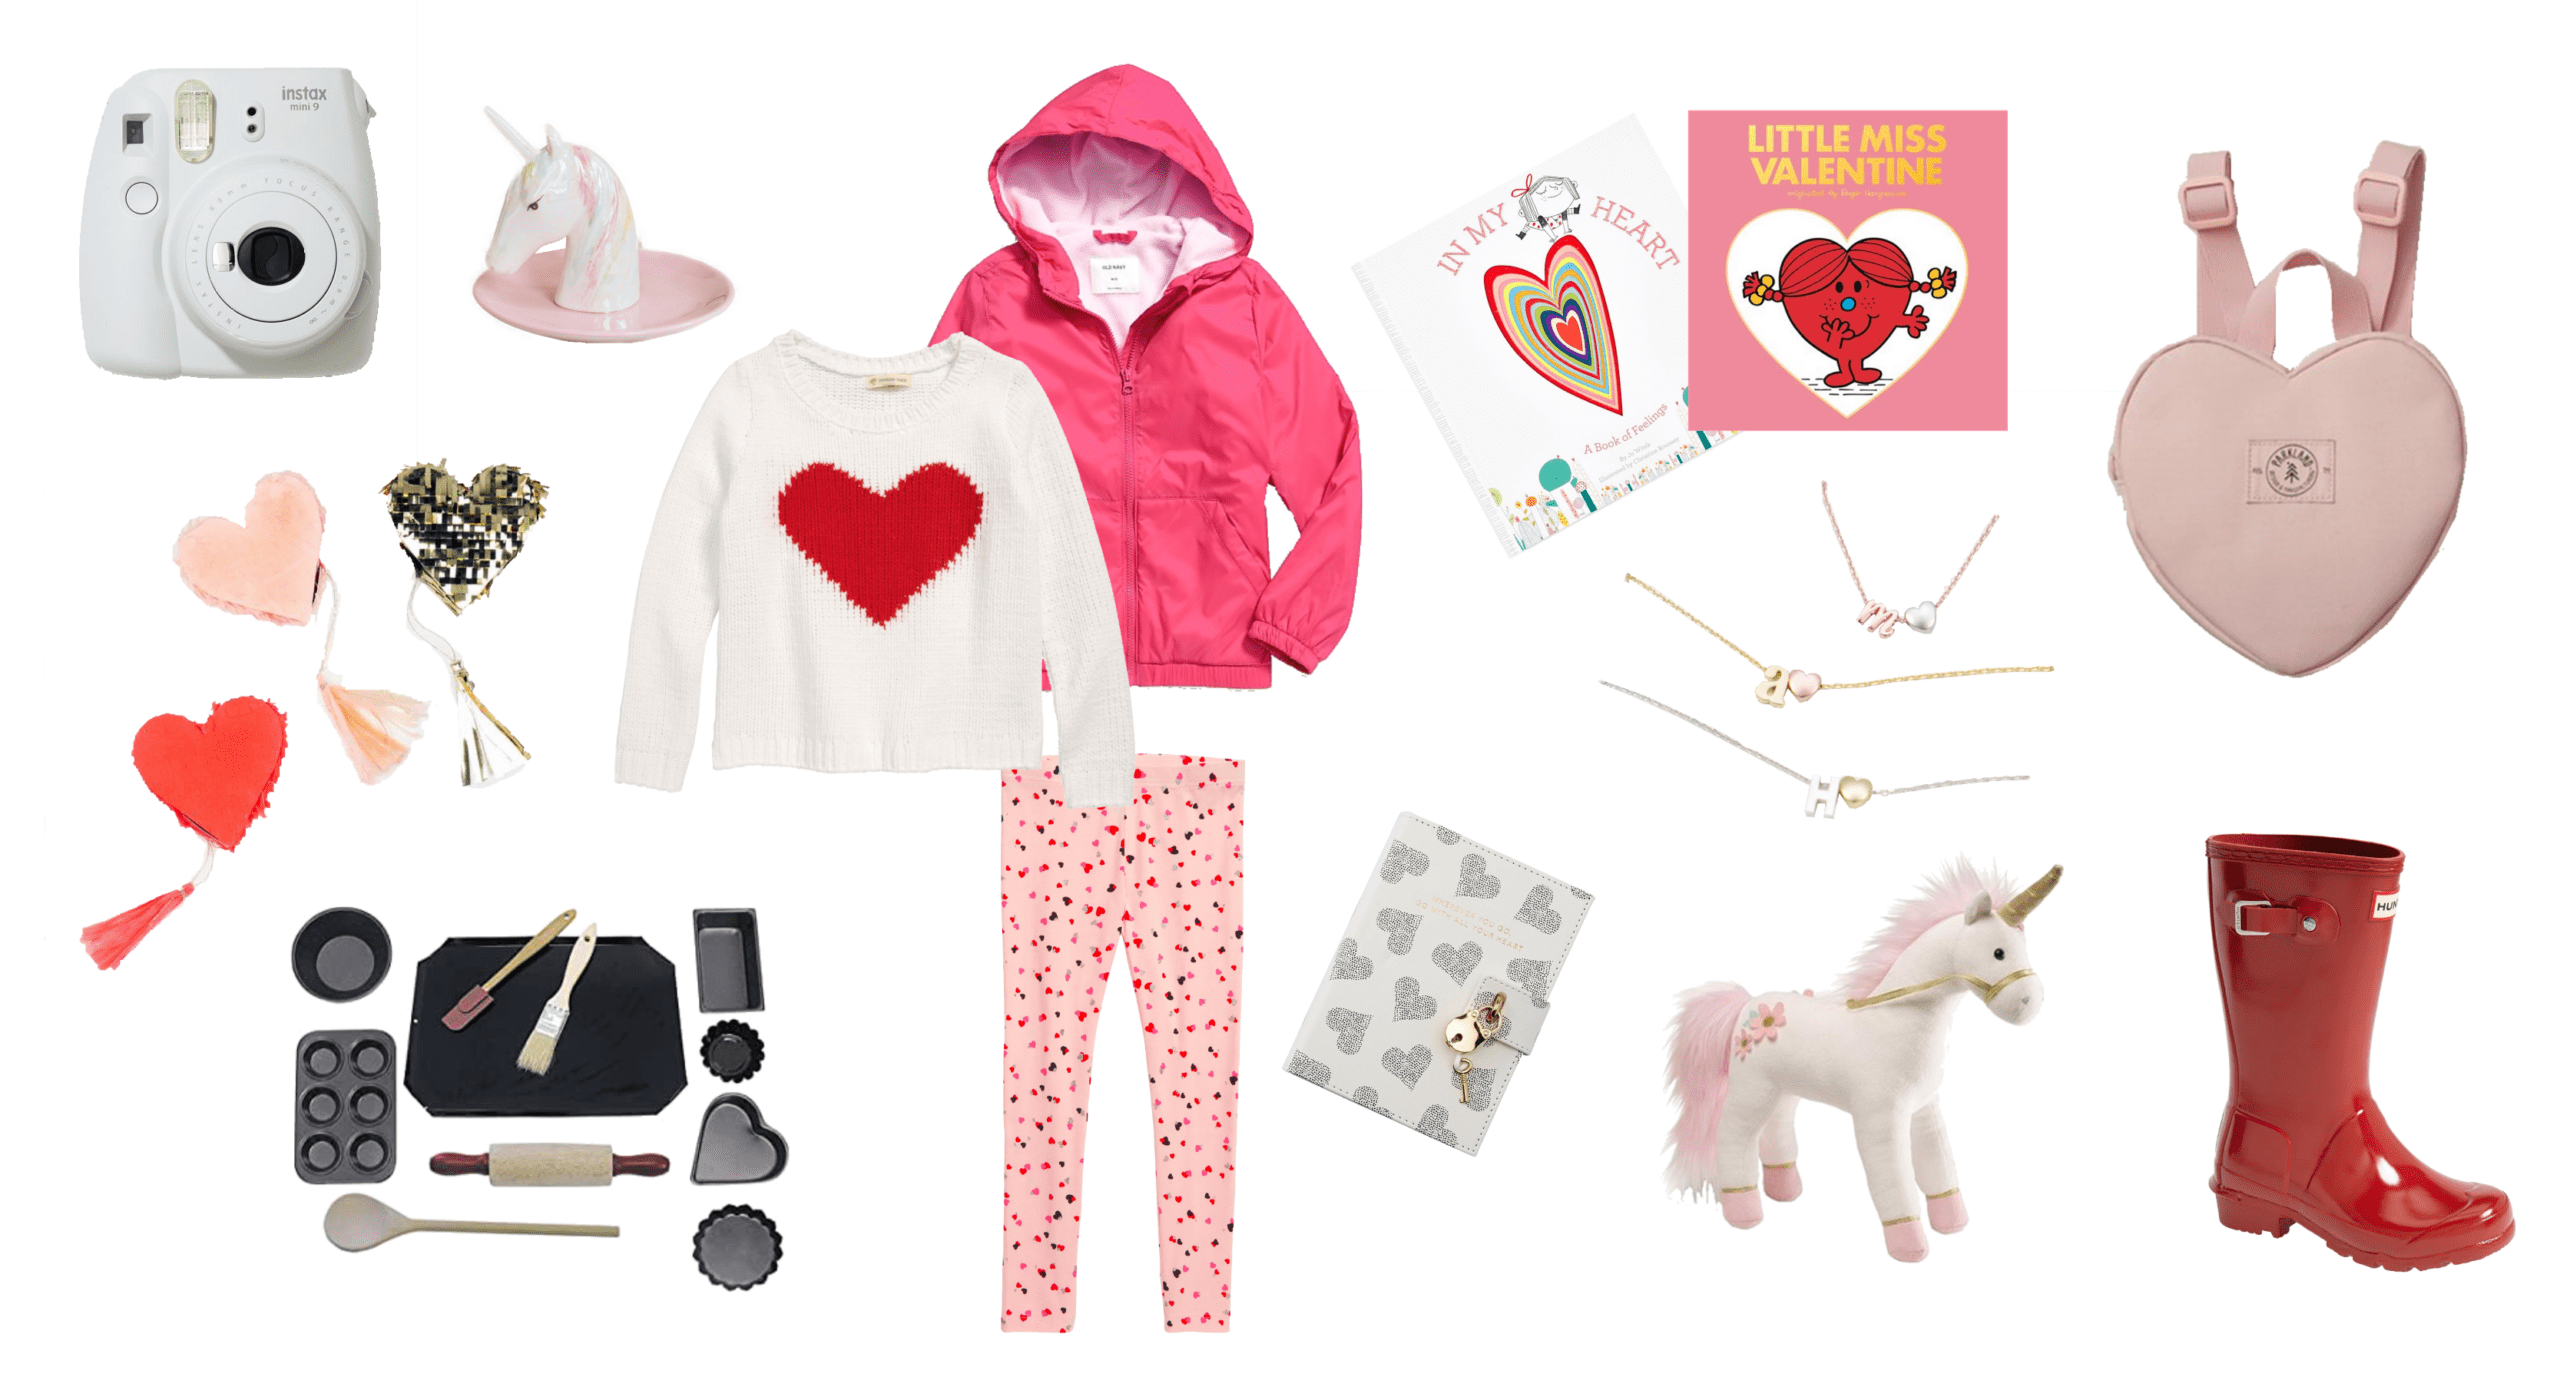 Valentine's Gift Guide for kids 2020